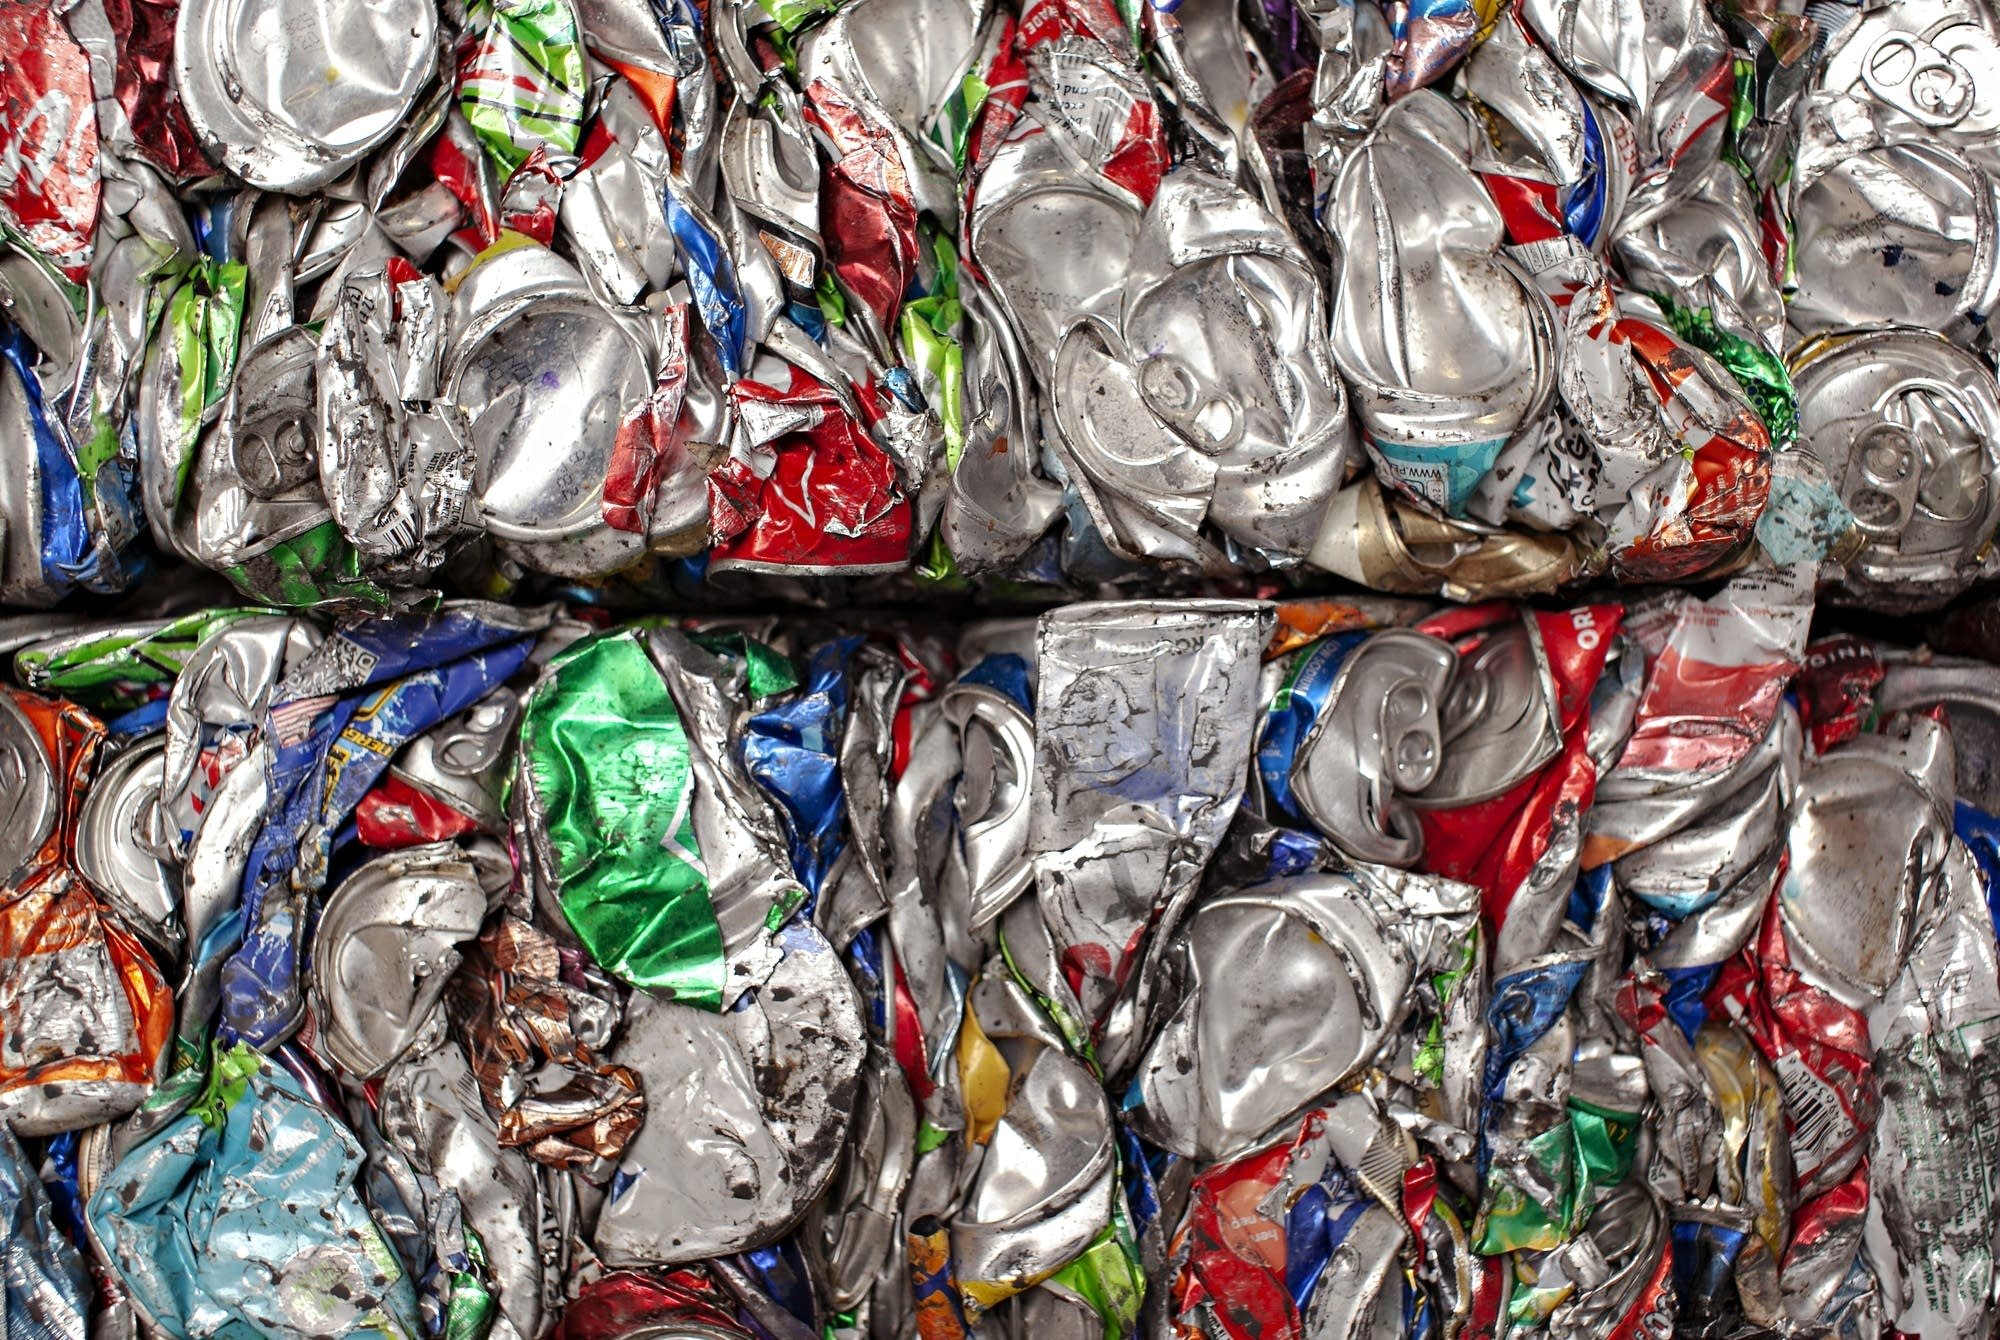 Compacted and baled aluminum cans await transport.